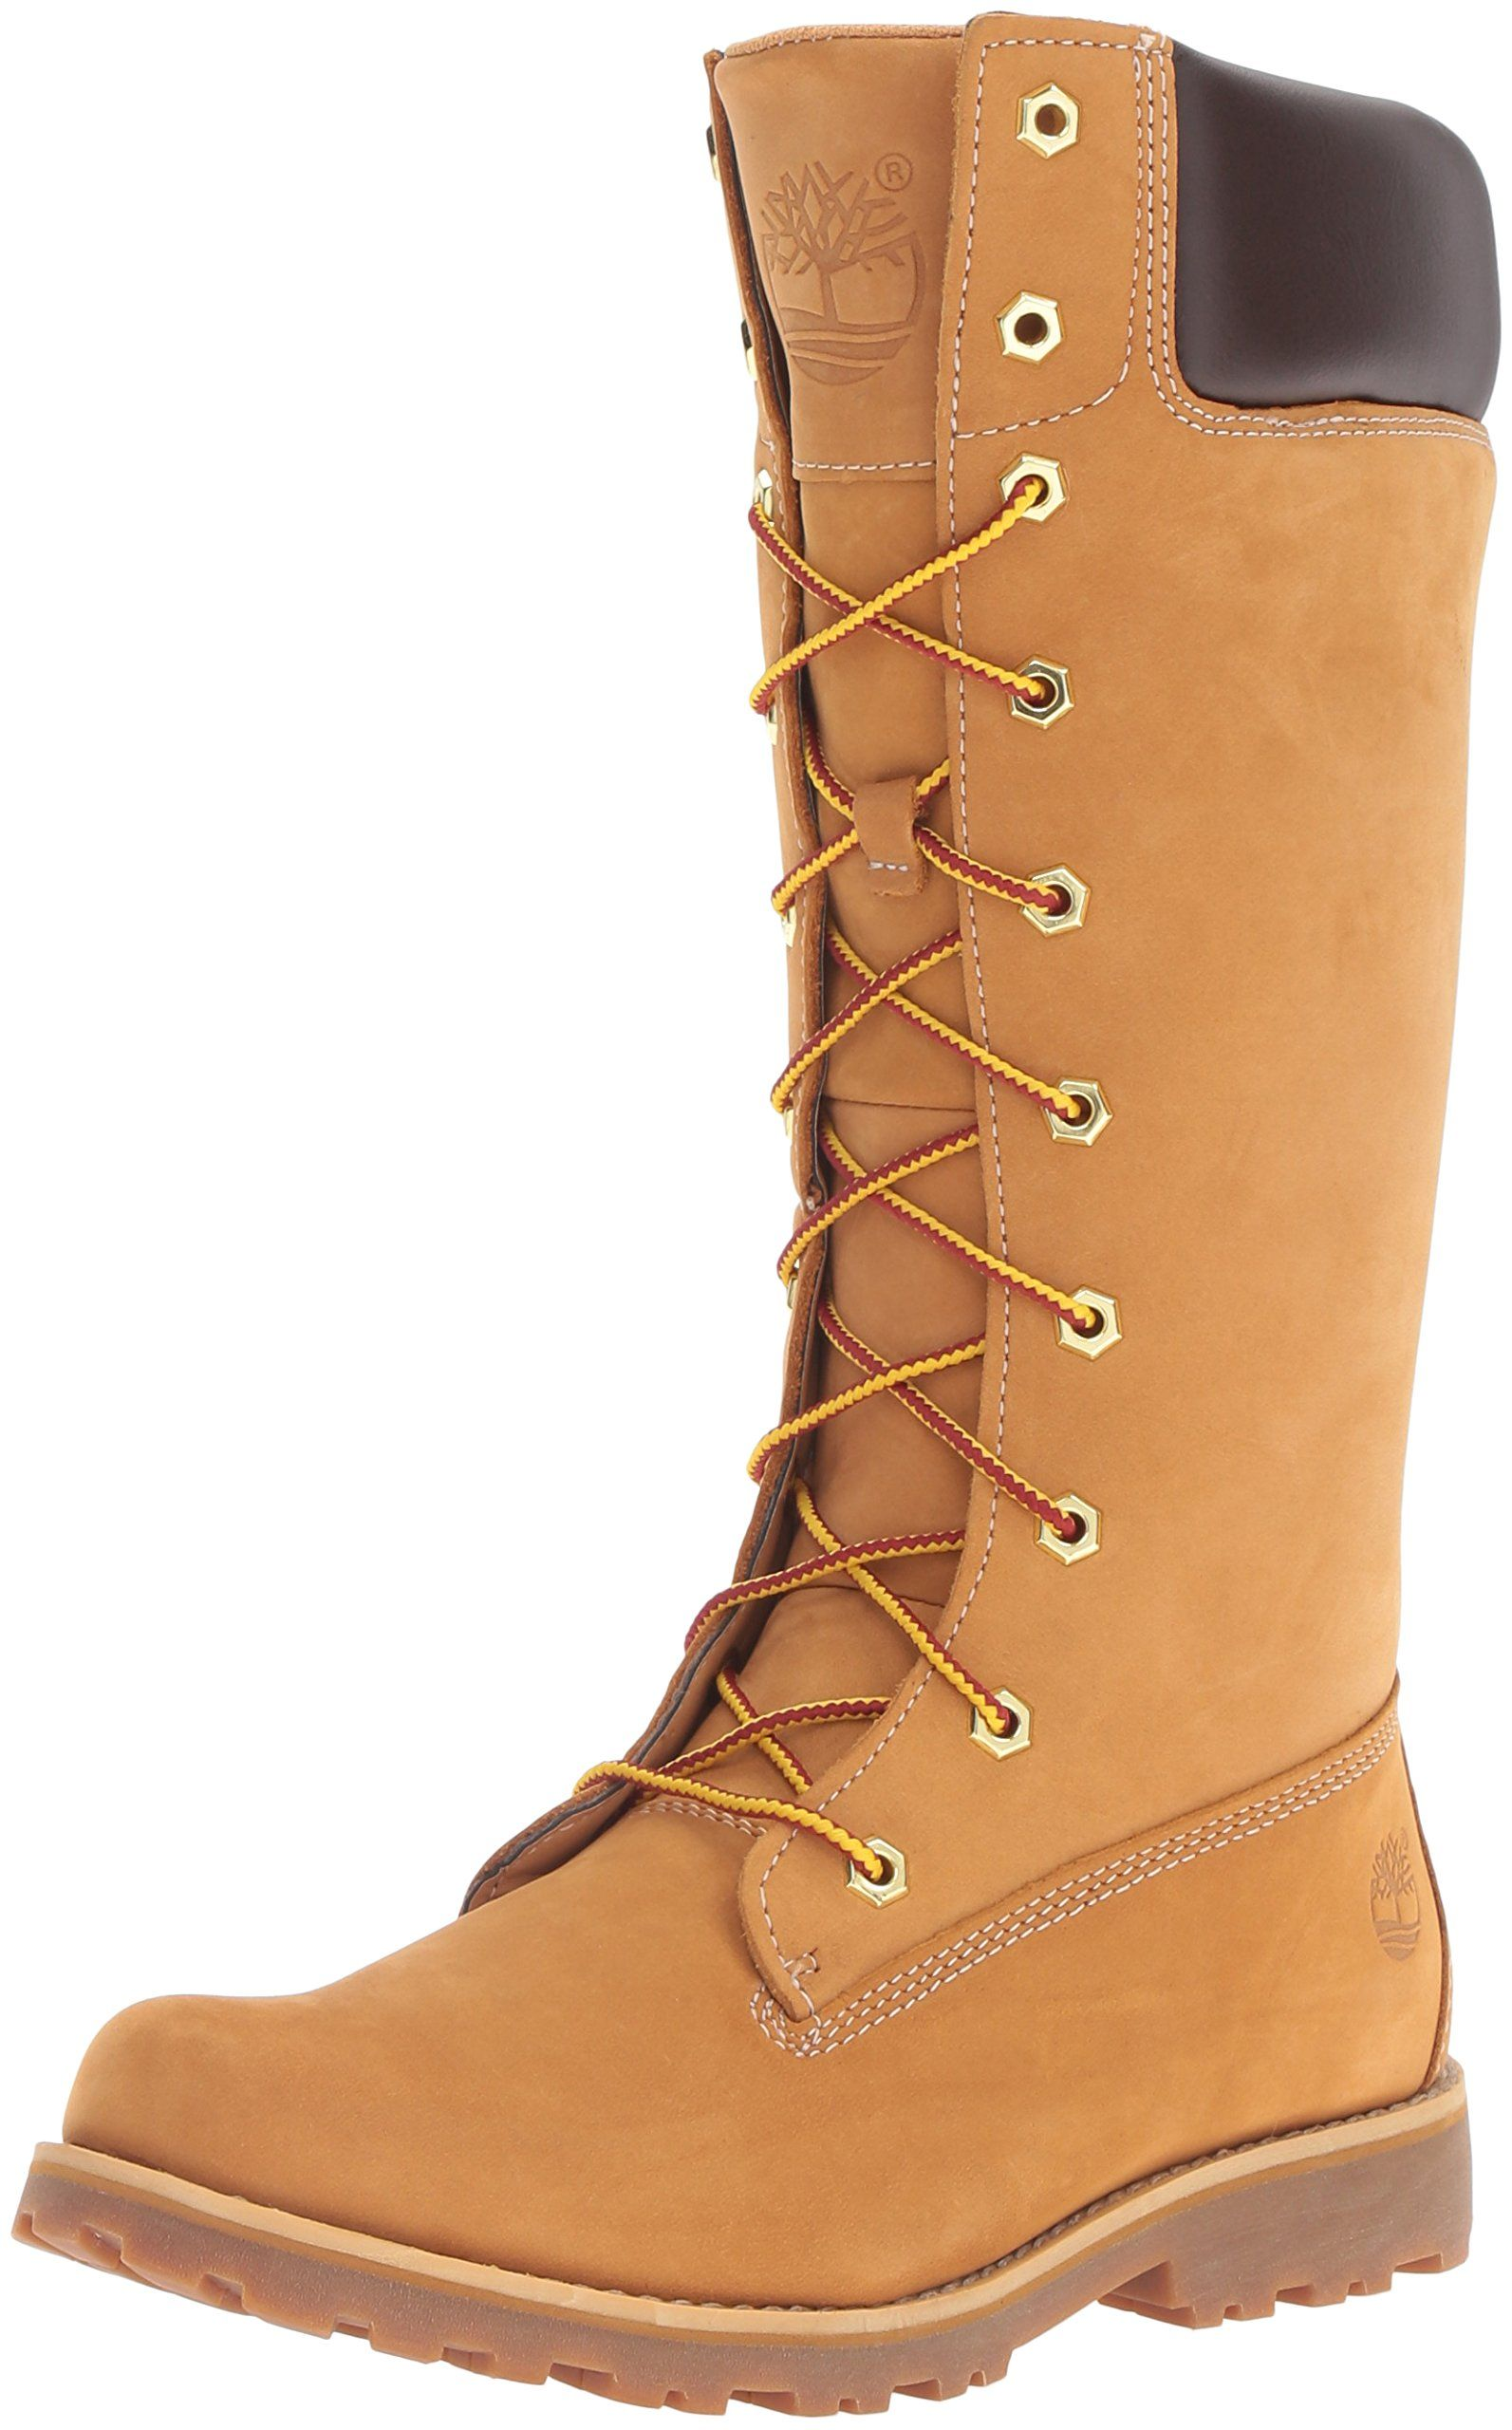 031fb5b625c9 Timberland Asphalt Trail Classic Tall Lace Up With Side Zip Toddler Little  Kid Big KidWheat7 M US Big Kid     Be sure to check out this awesome  product.